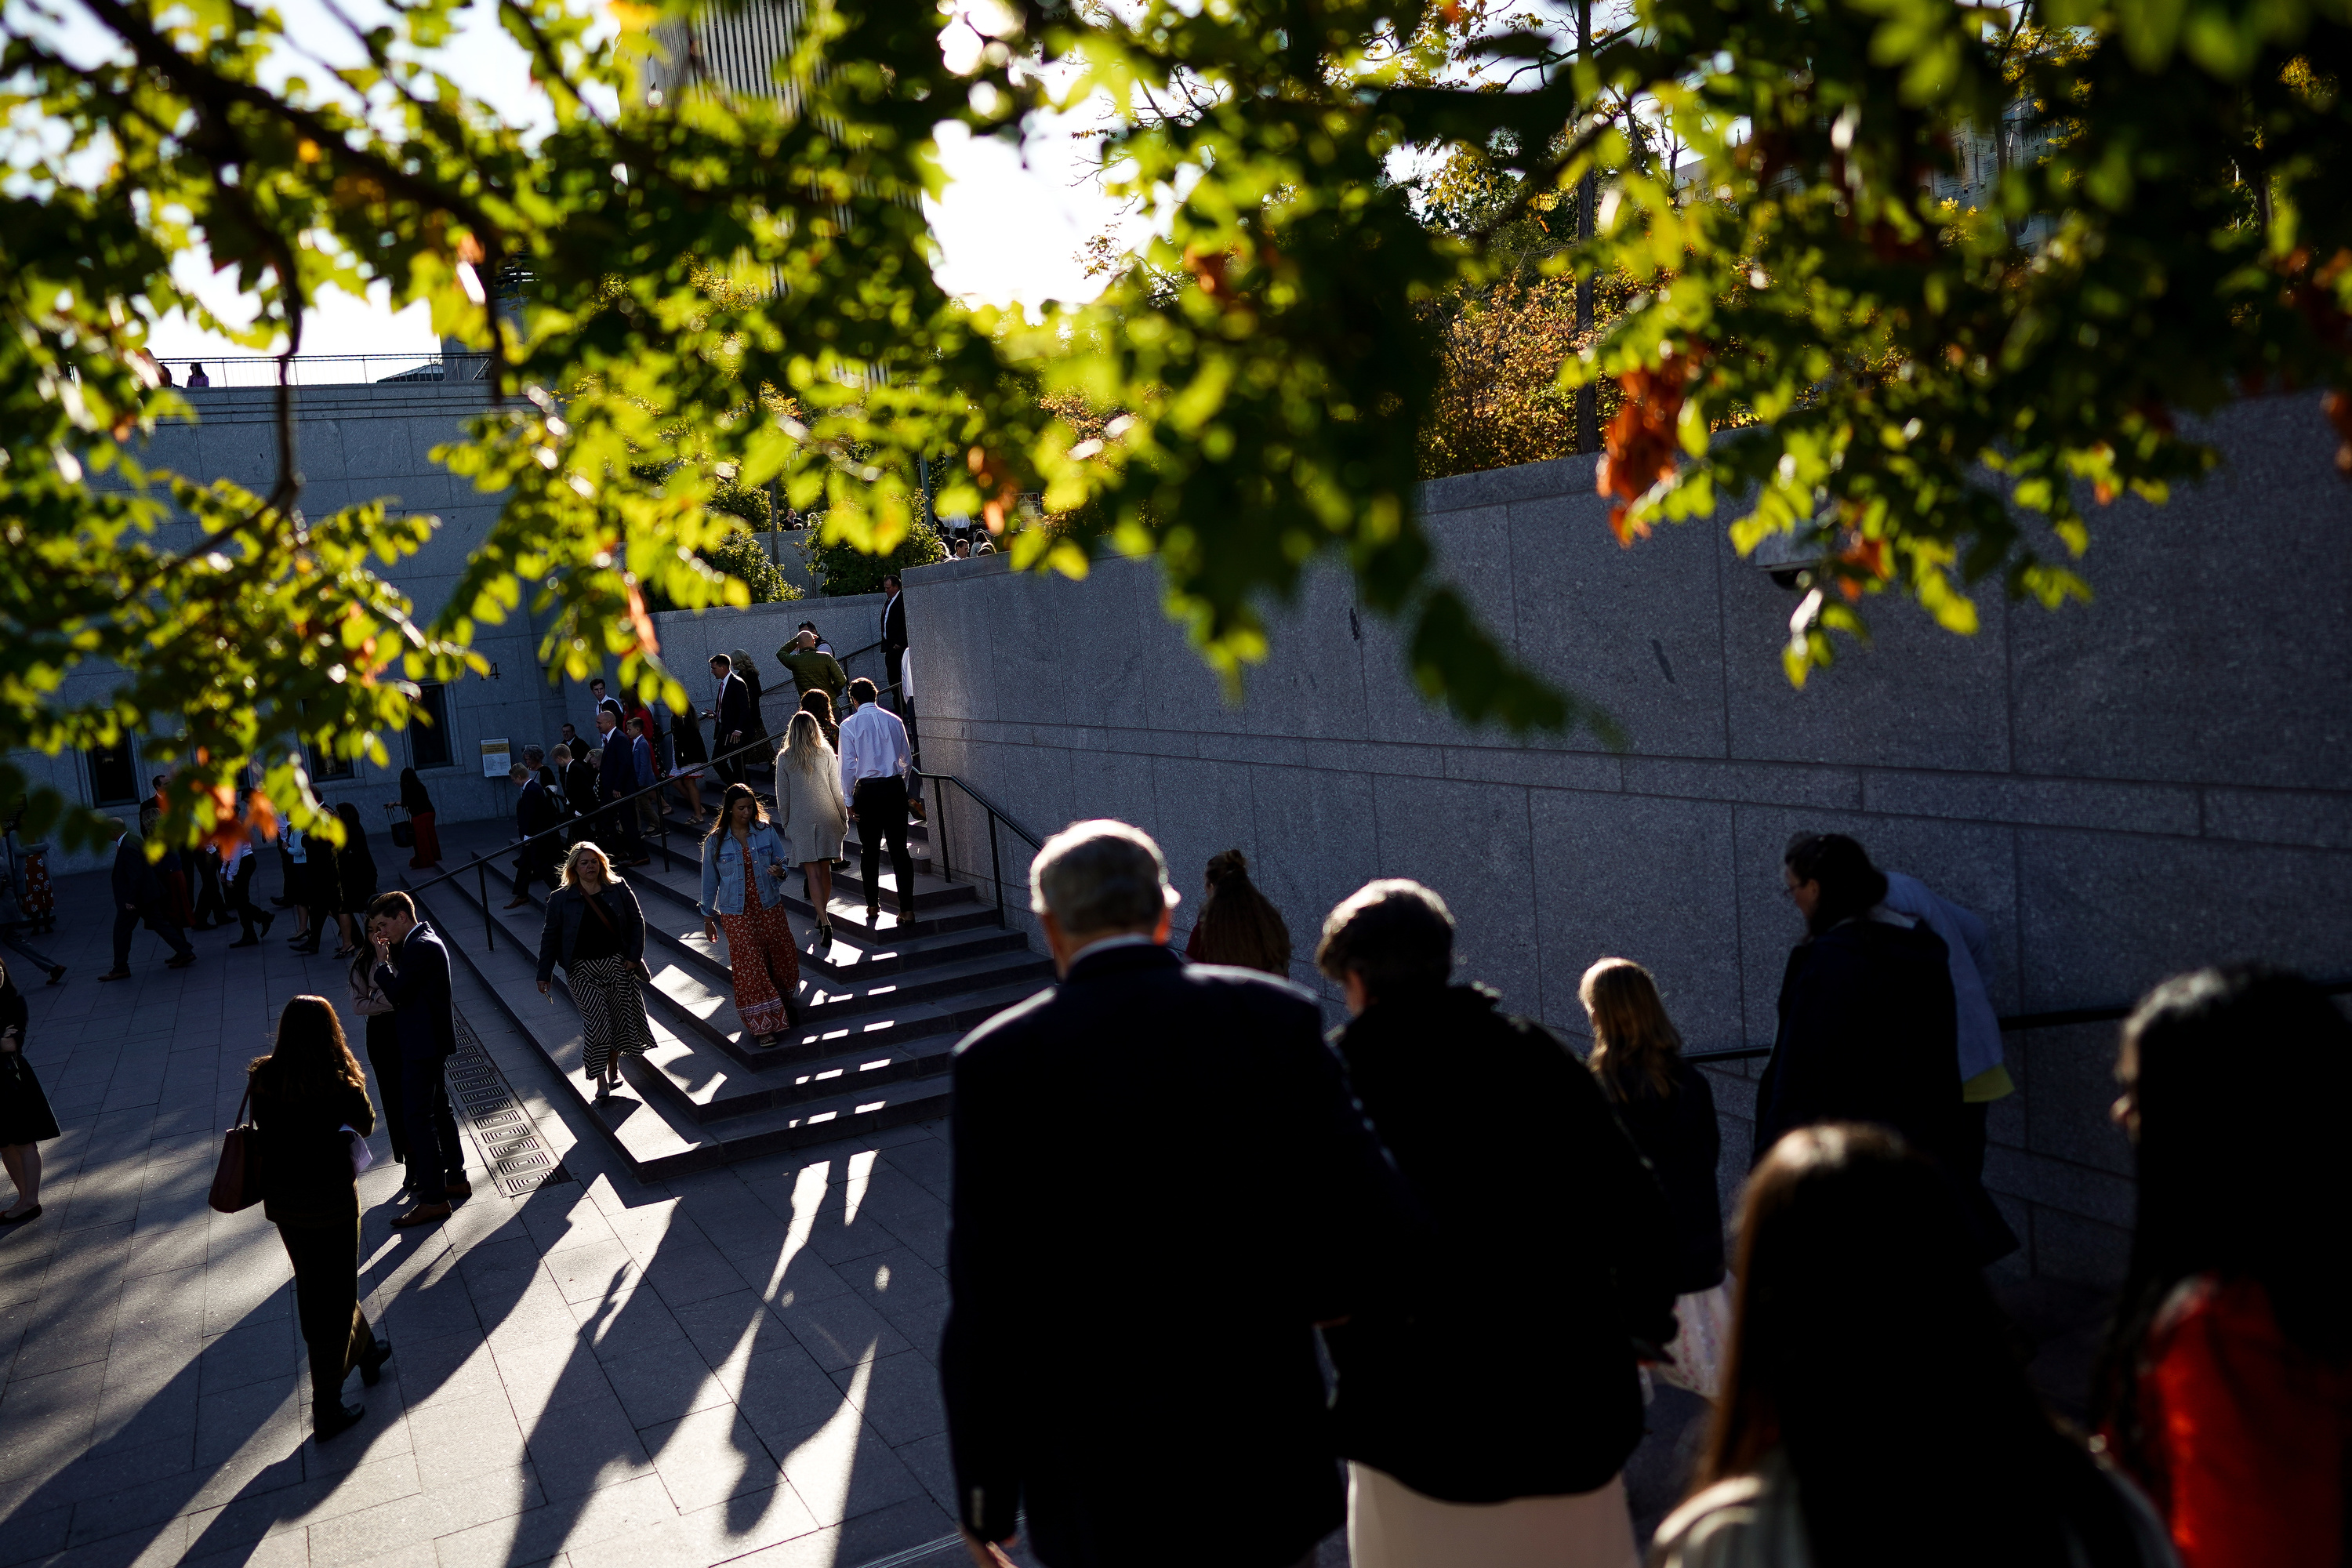 Conferencegoers arrive at the Conference Center in Salt Lake City before the 189th Semiannual General Conference of The Church of Jesus Christ of Latter-day Saints on Saturday, Oct. 5, 2019.